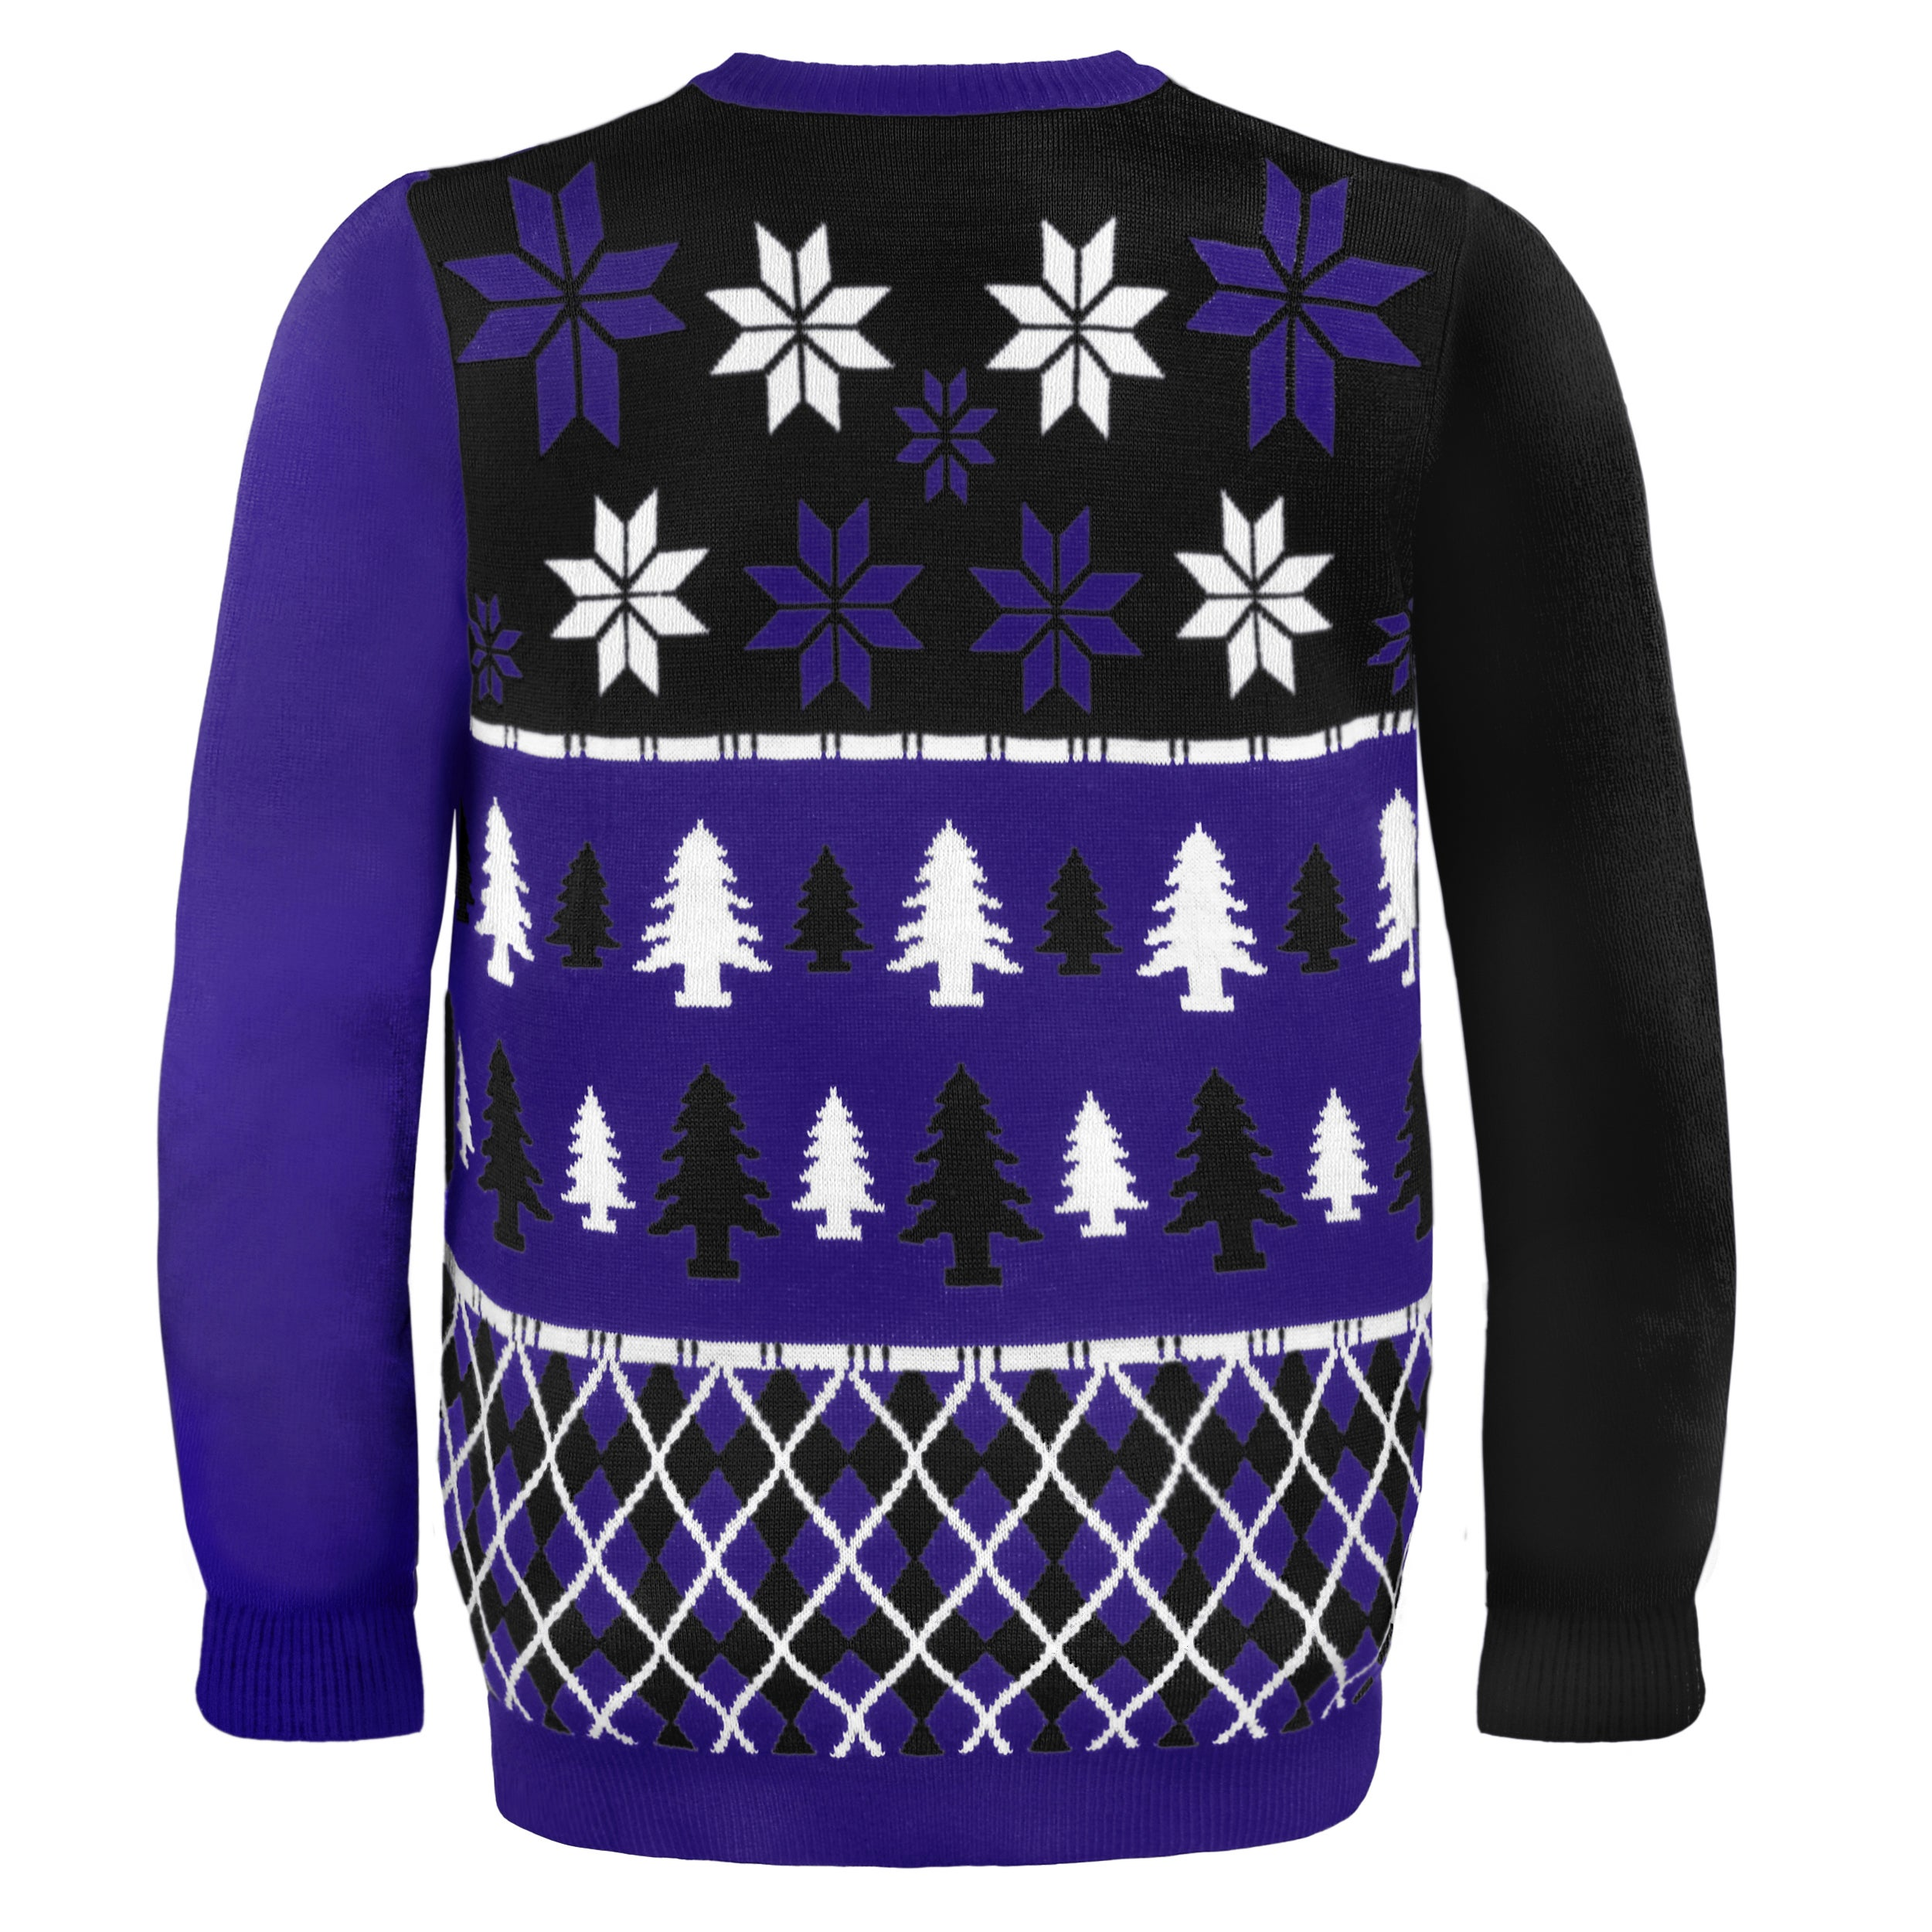 647c8a808 Shop Baltimore Ravens Busy Block Ugly Sweater - Free Shipping Today -  Overstock.com - 9482175